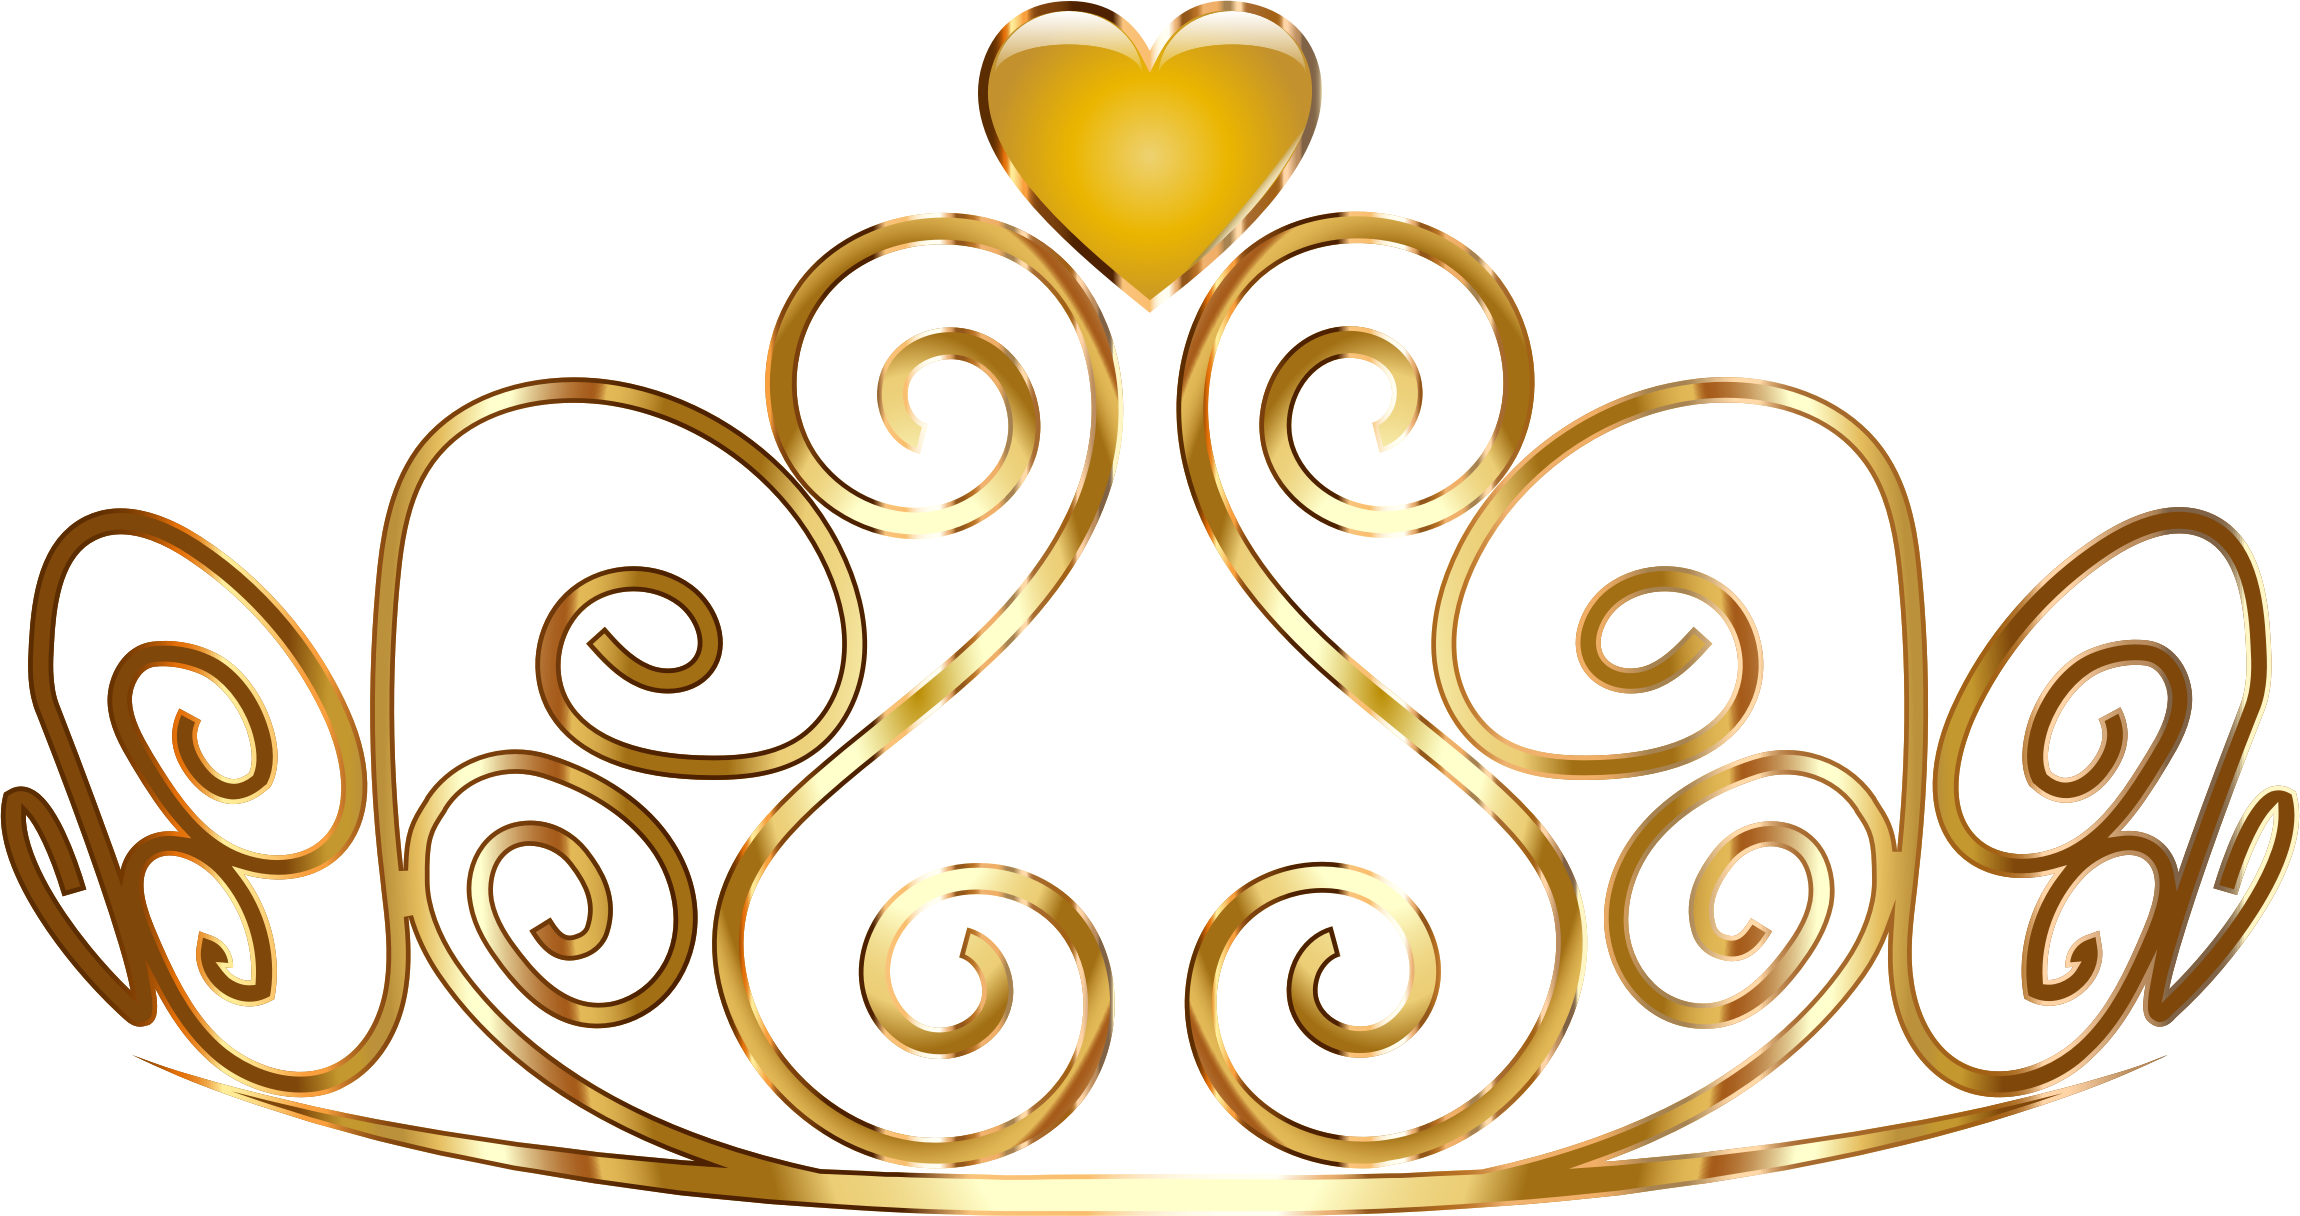 Colorful tiara big image. Queen clipart crown gold